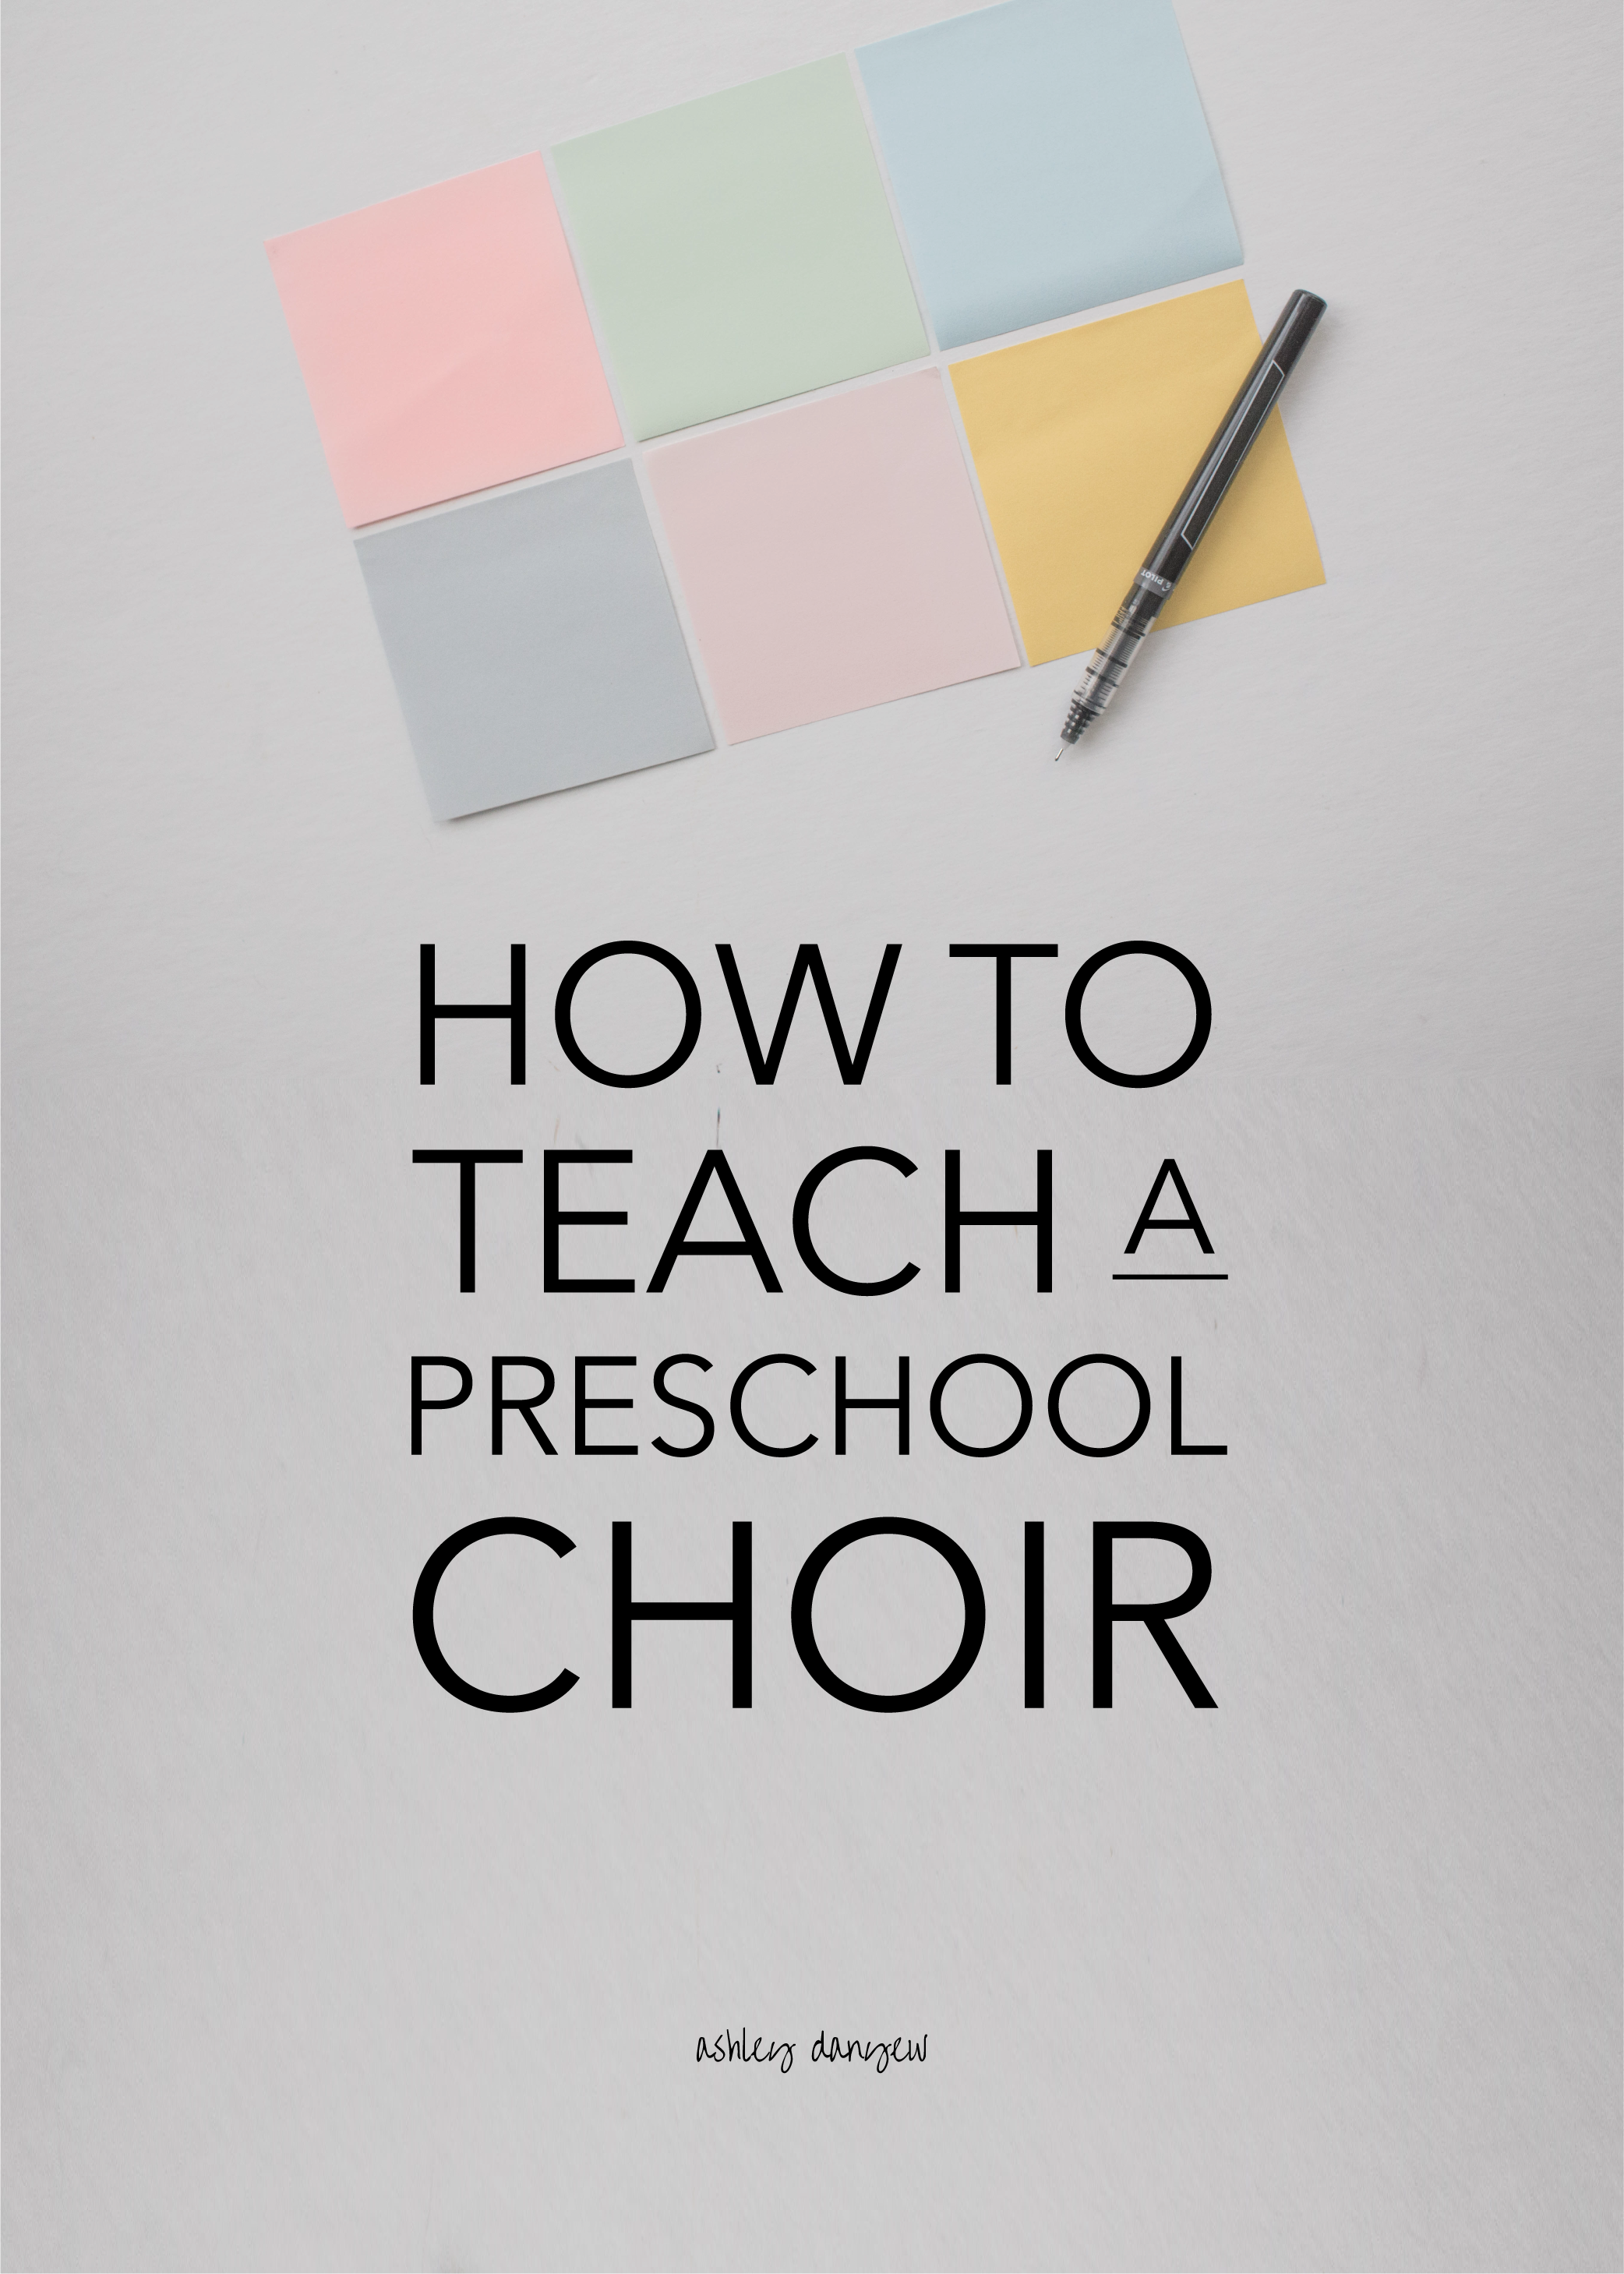 How to Teach a Preschool Choir